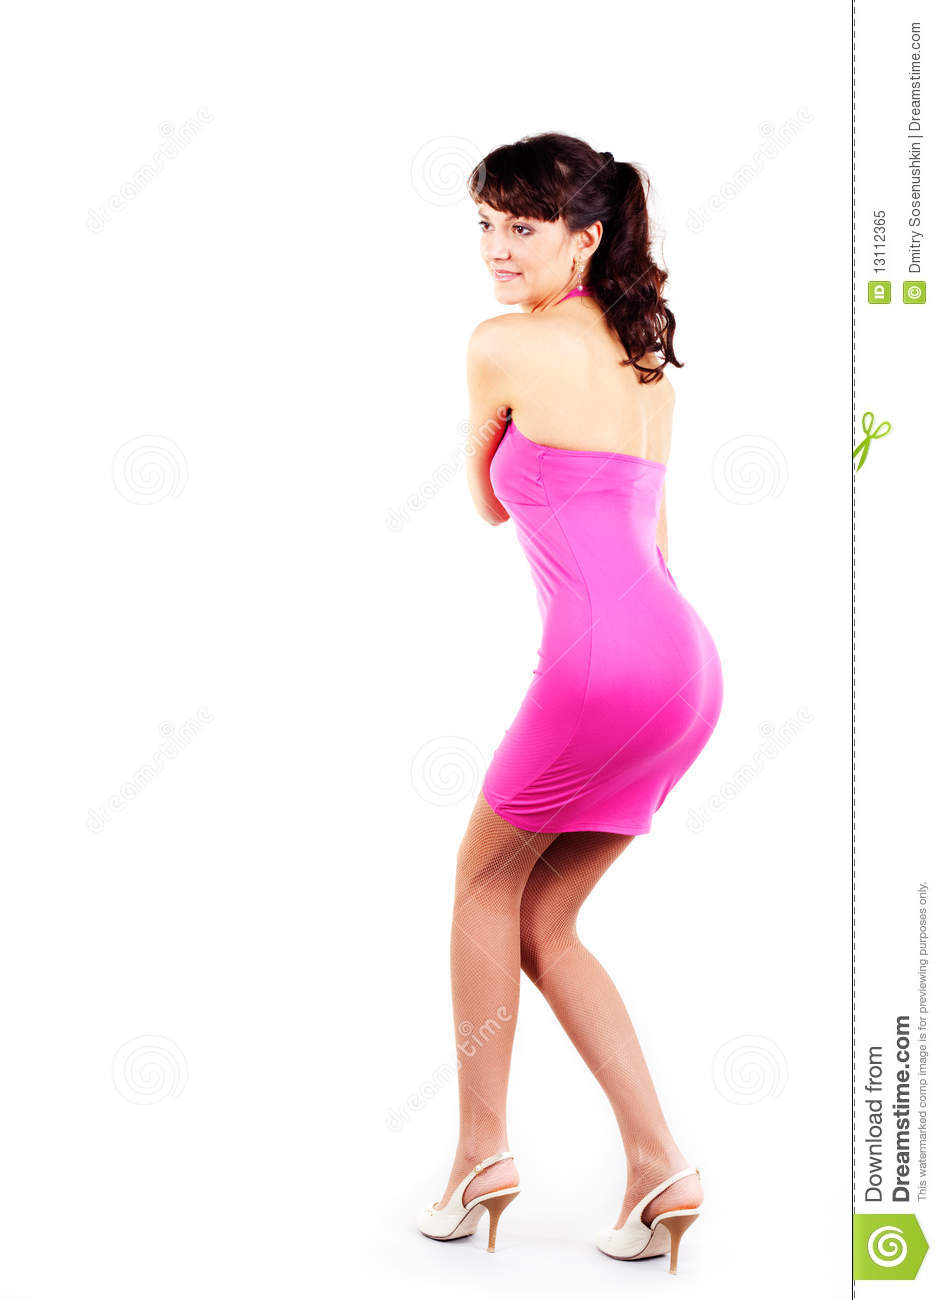 Beautiful Women In Short Dress Royalty Free Stock Photo - Image ...